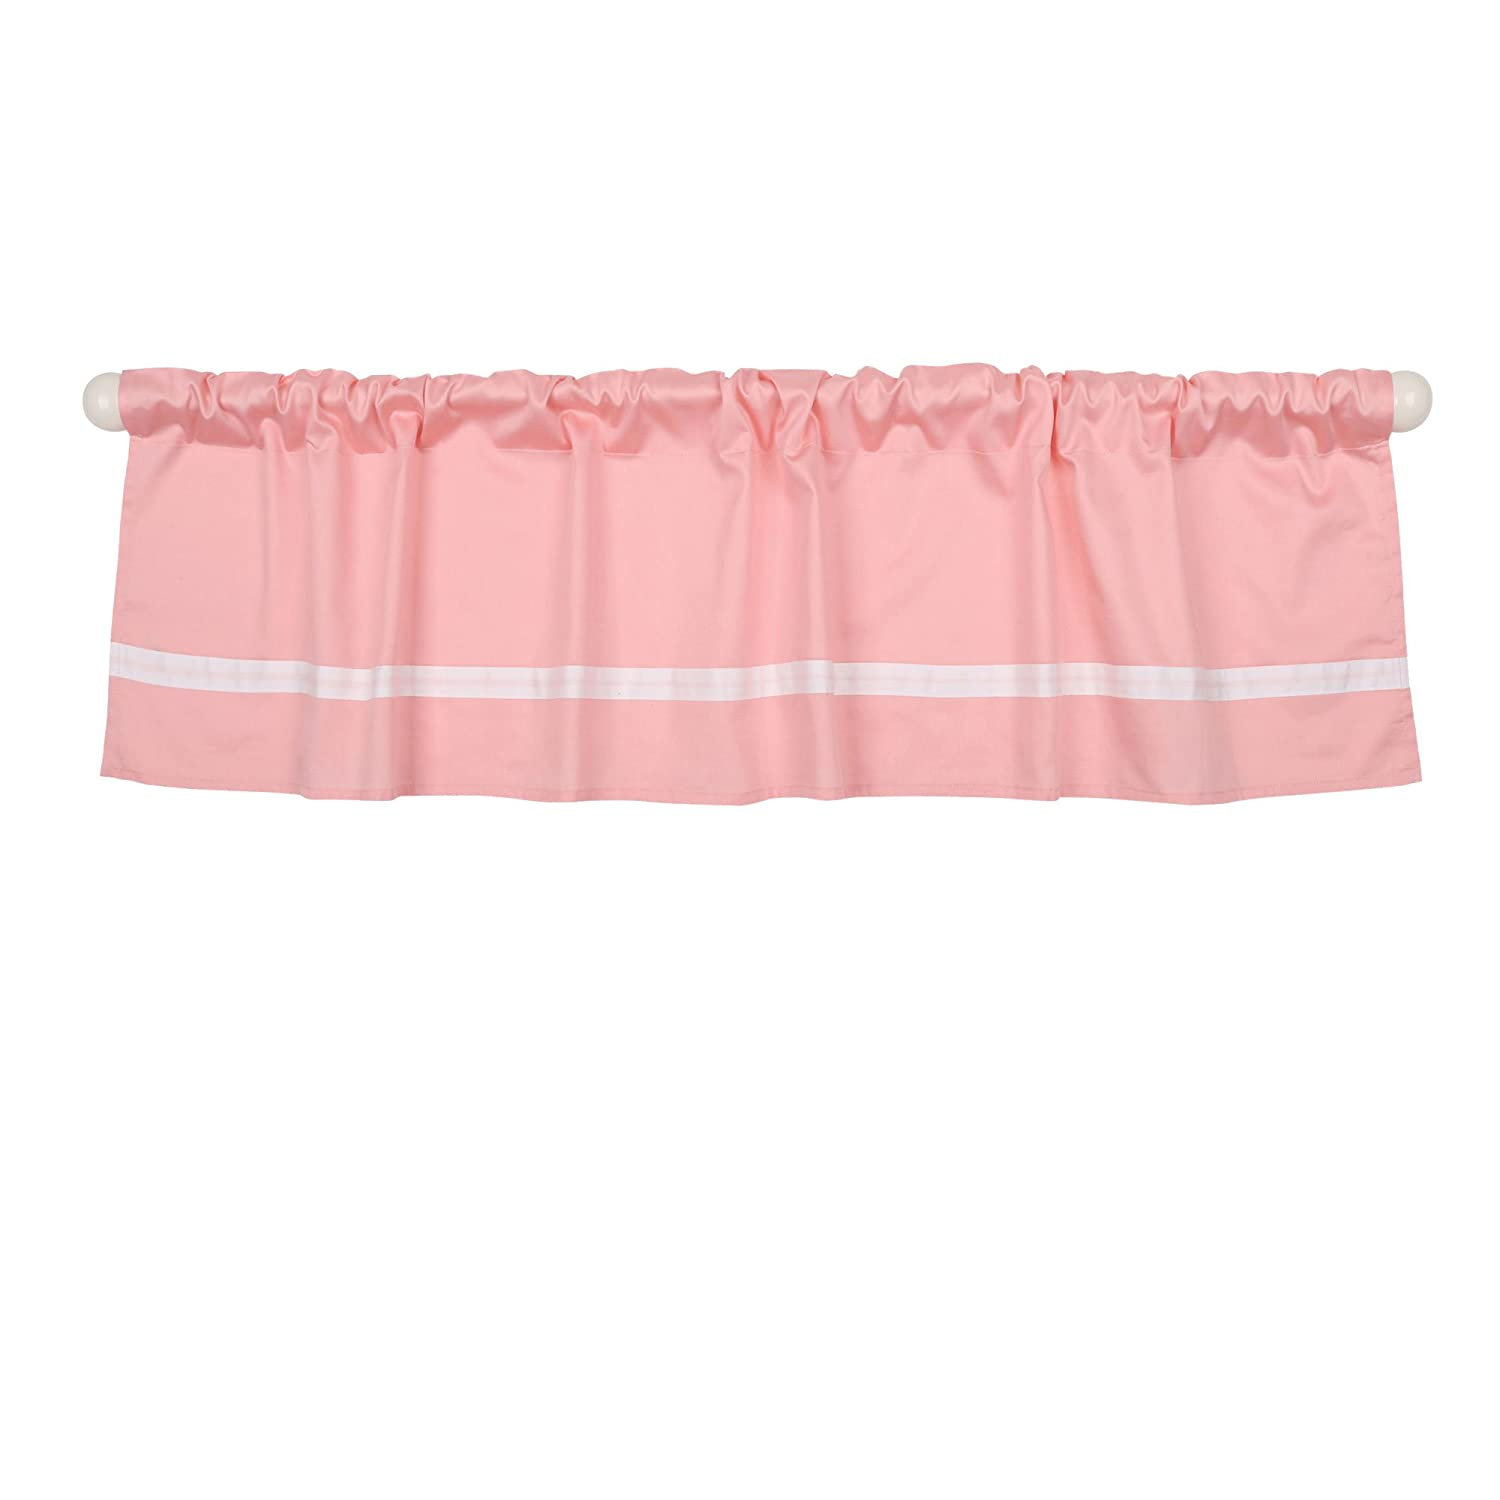 Pink Tailored Window Valance by The Peanut Shell 100/% Cotton Sateen